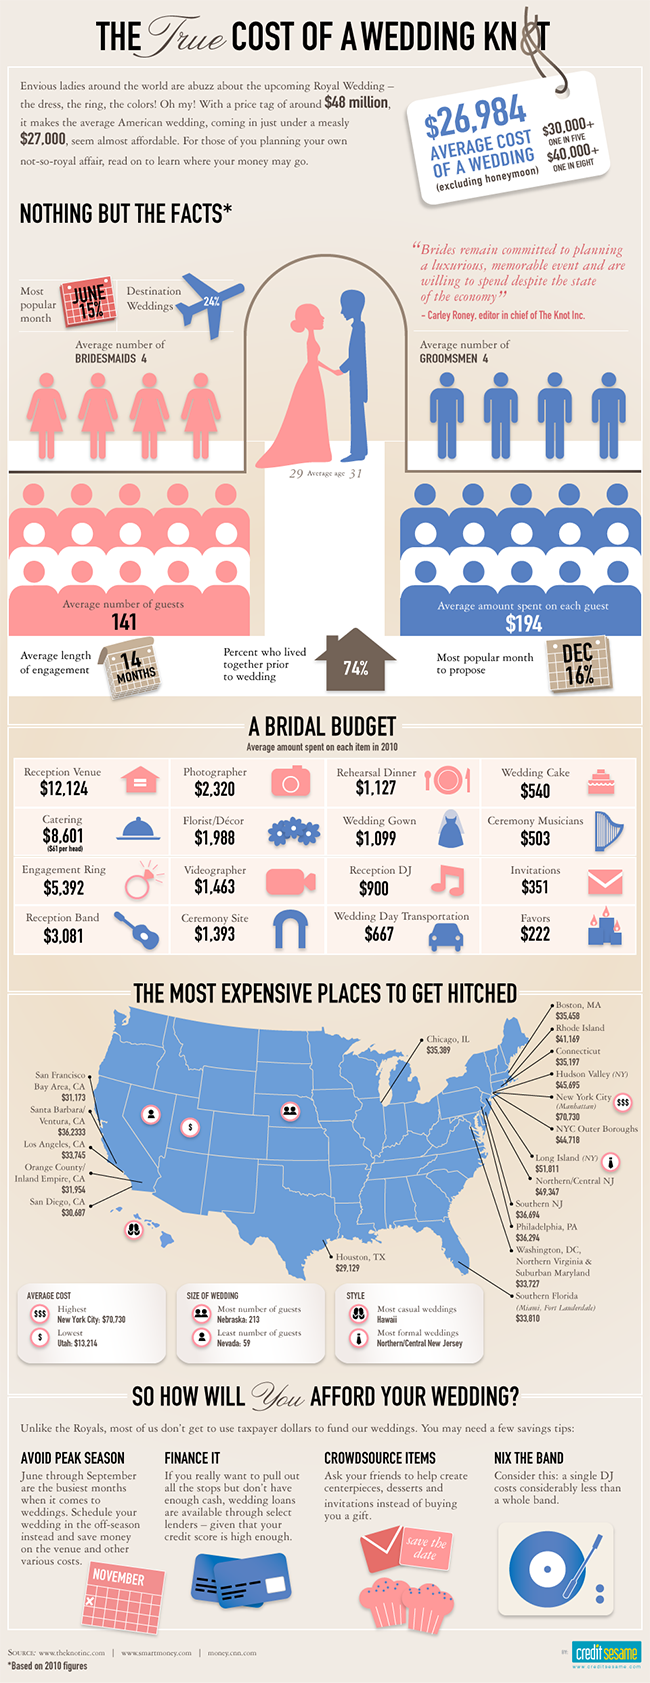 wedding-cost-infographic_small